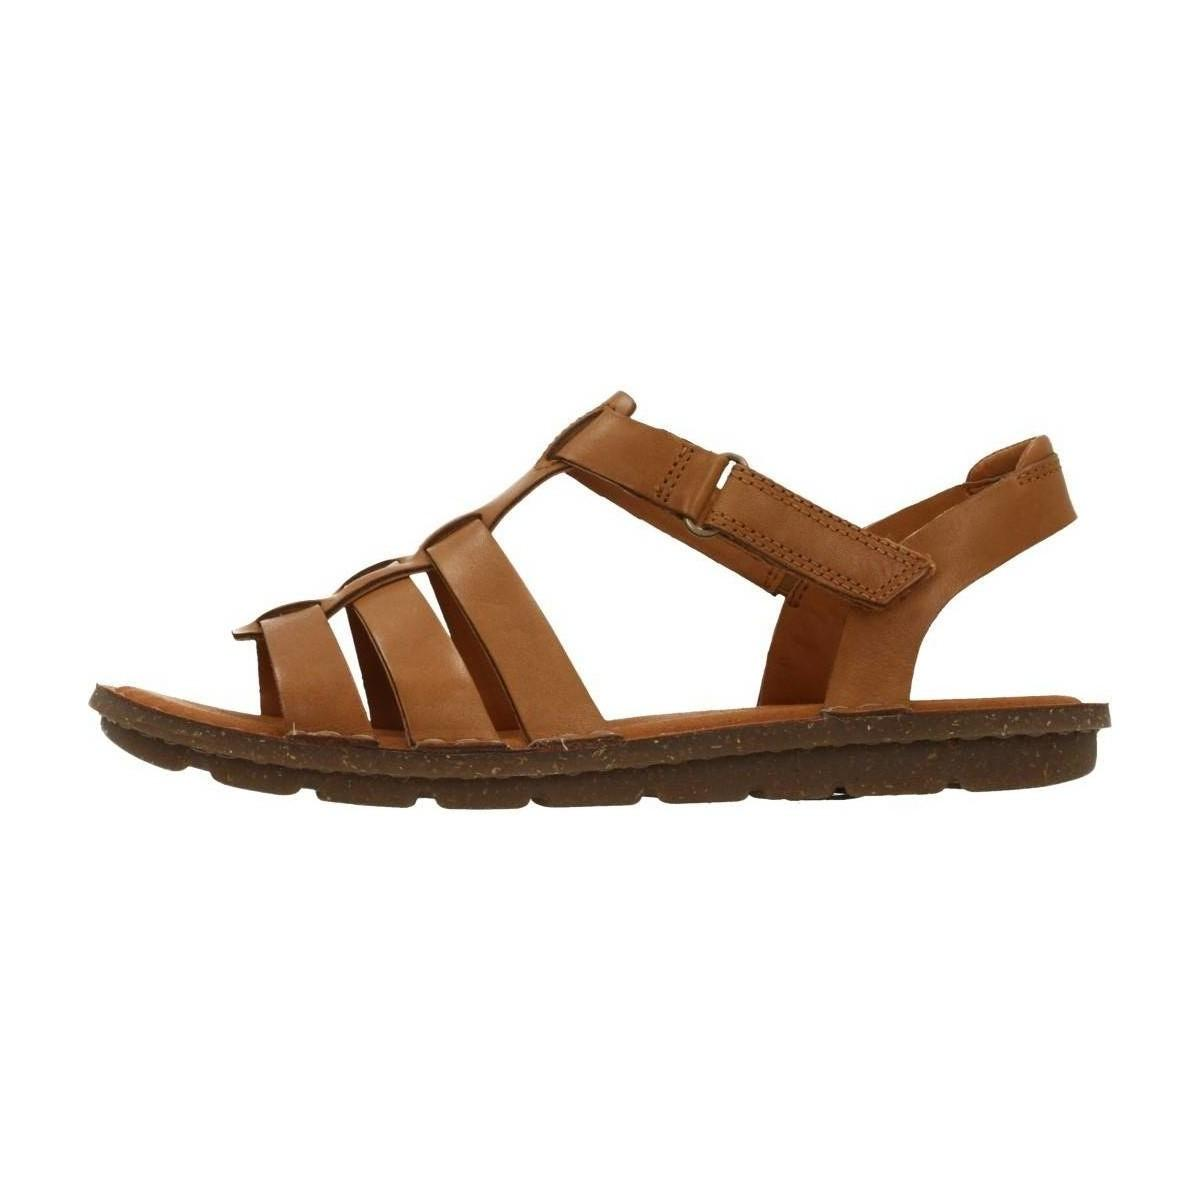 1490ce95bc30 Clarks - Blake Jewel Tan Women s Sandals In Brown - Lyst. View fullscreen